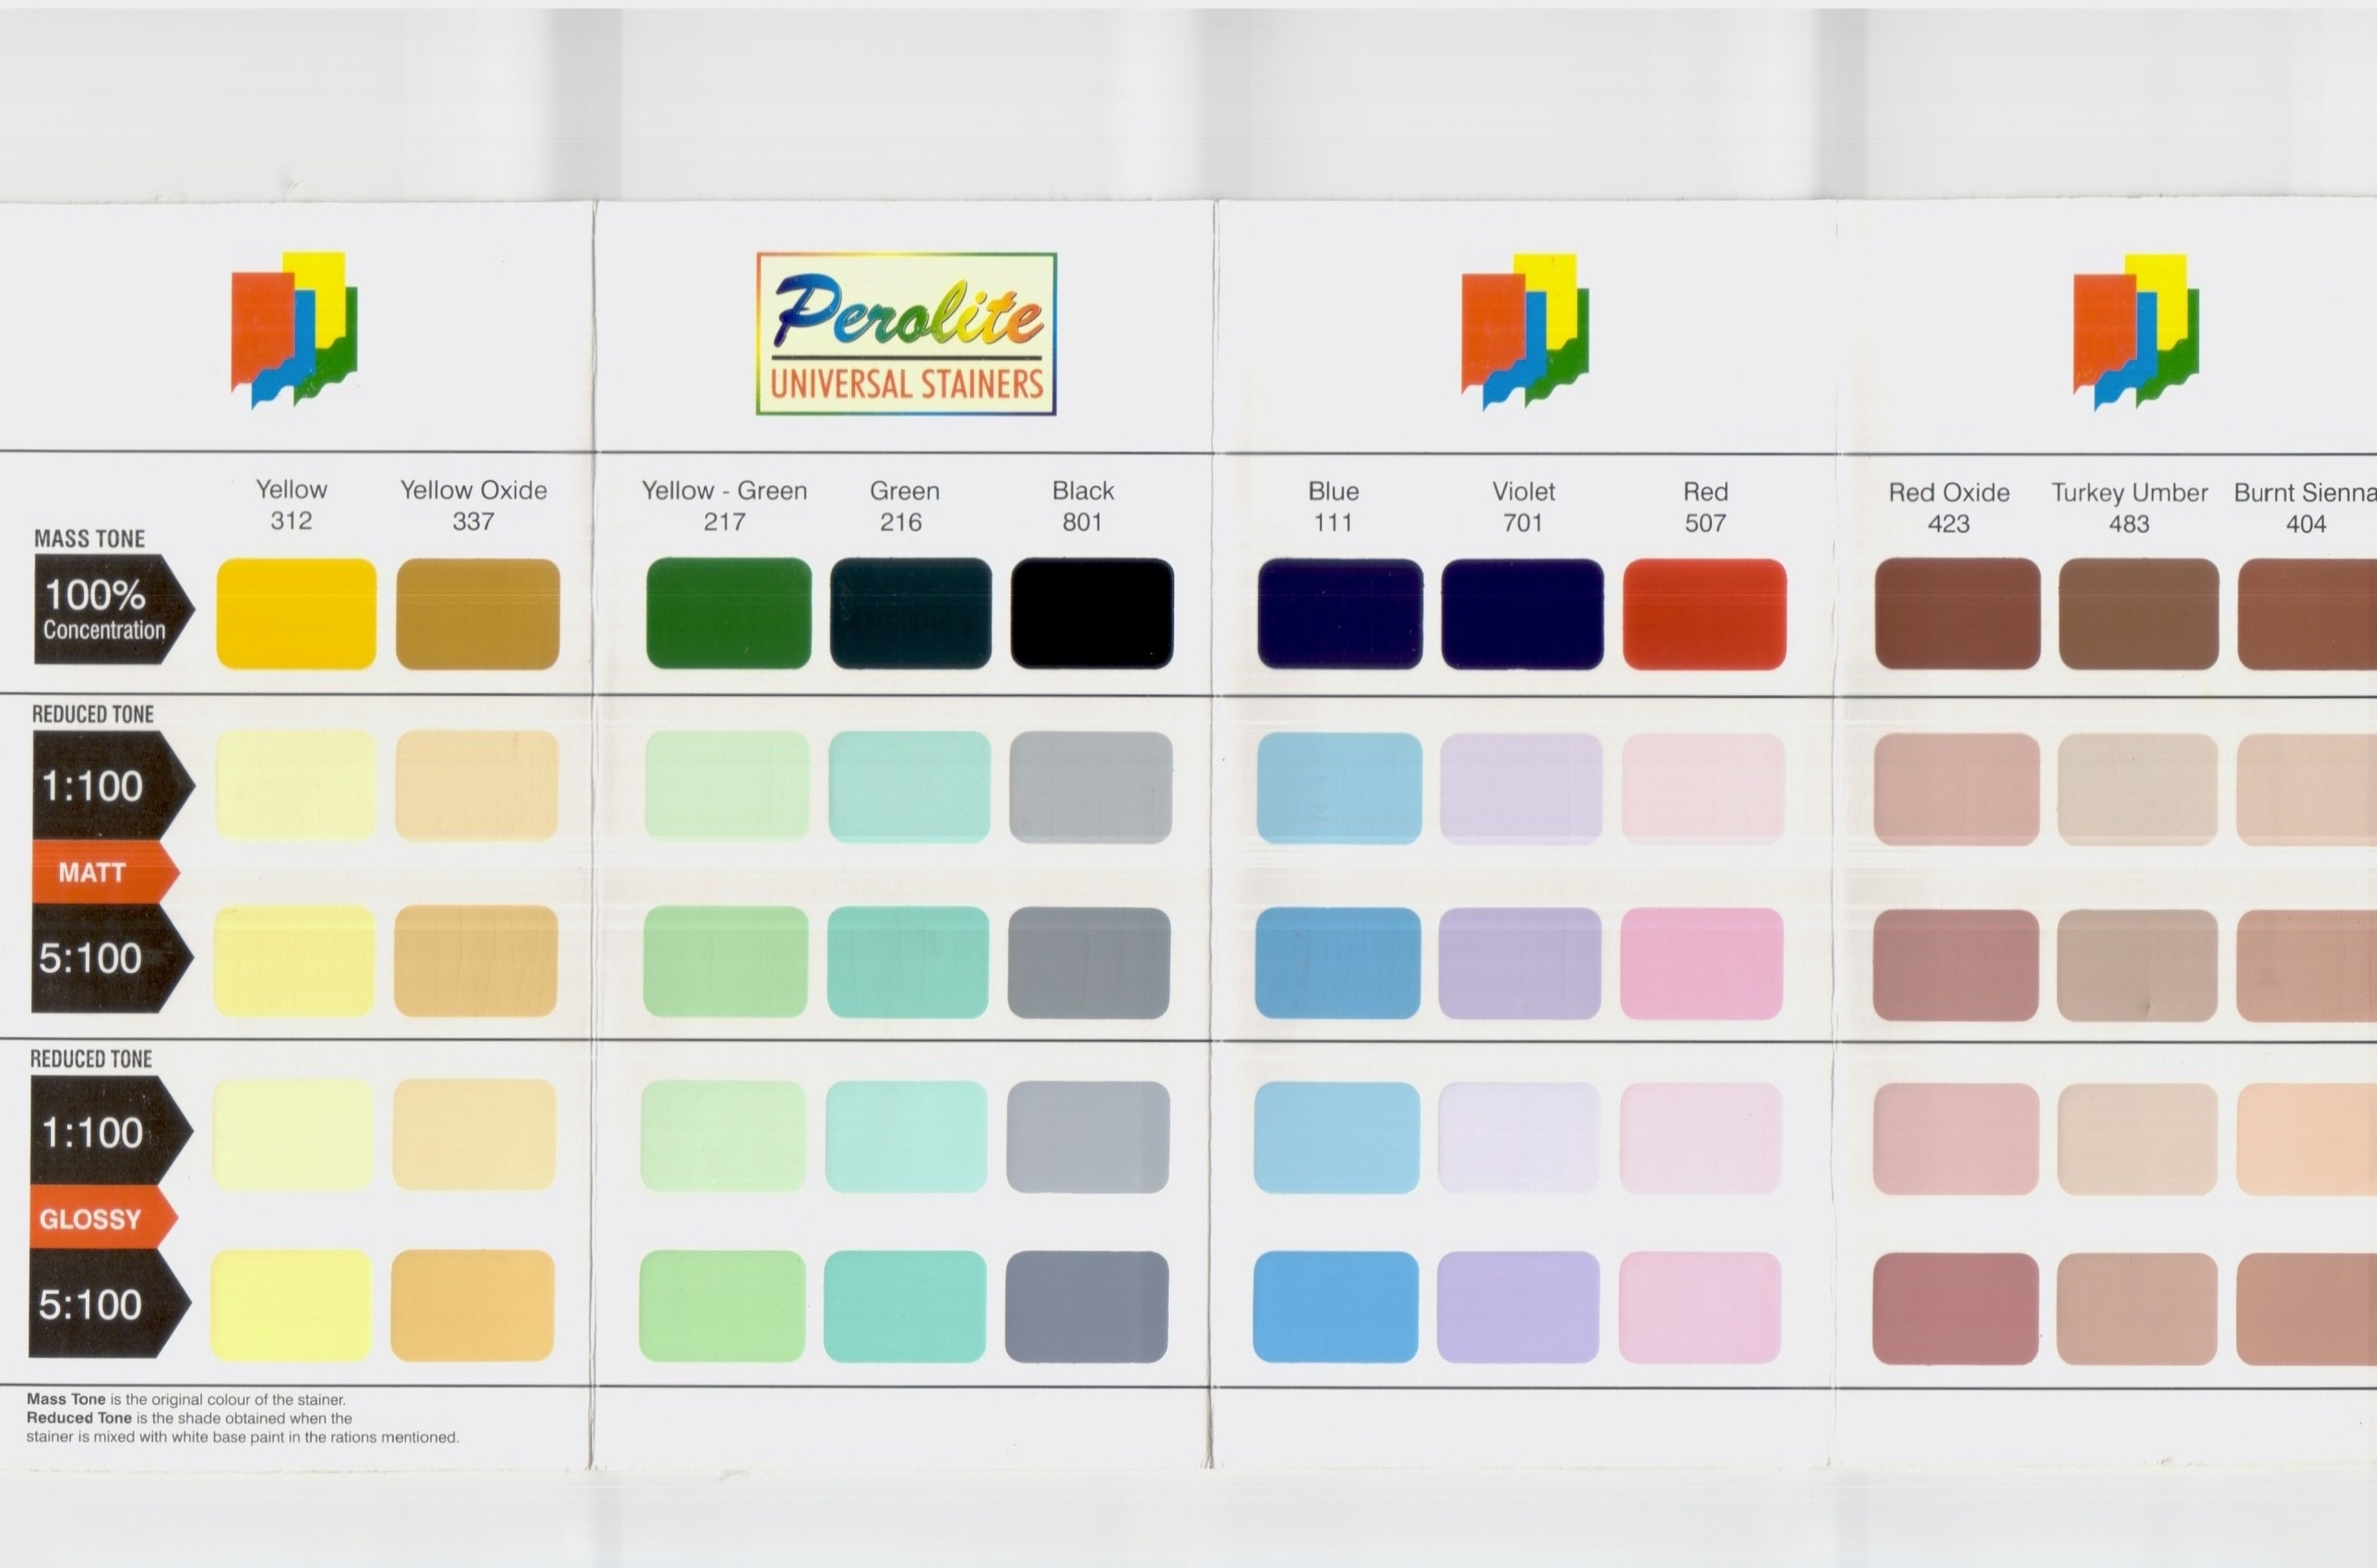 Universal Stainer Shade Card